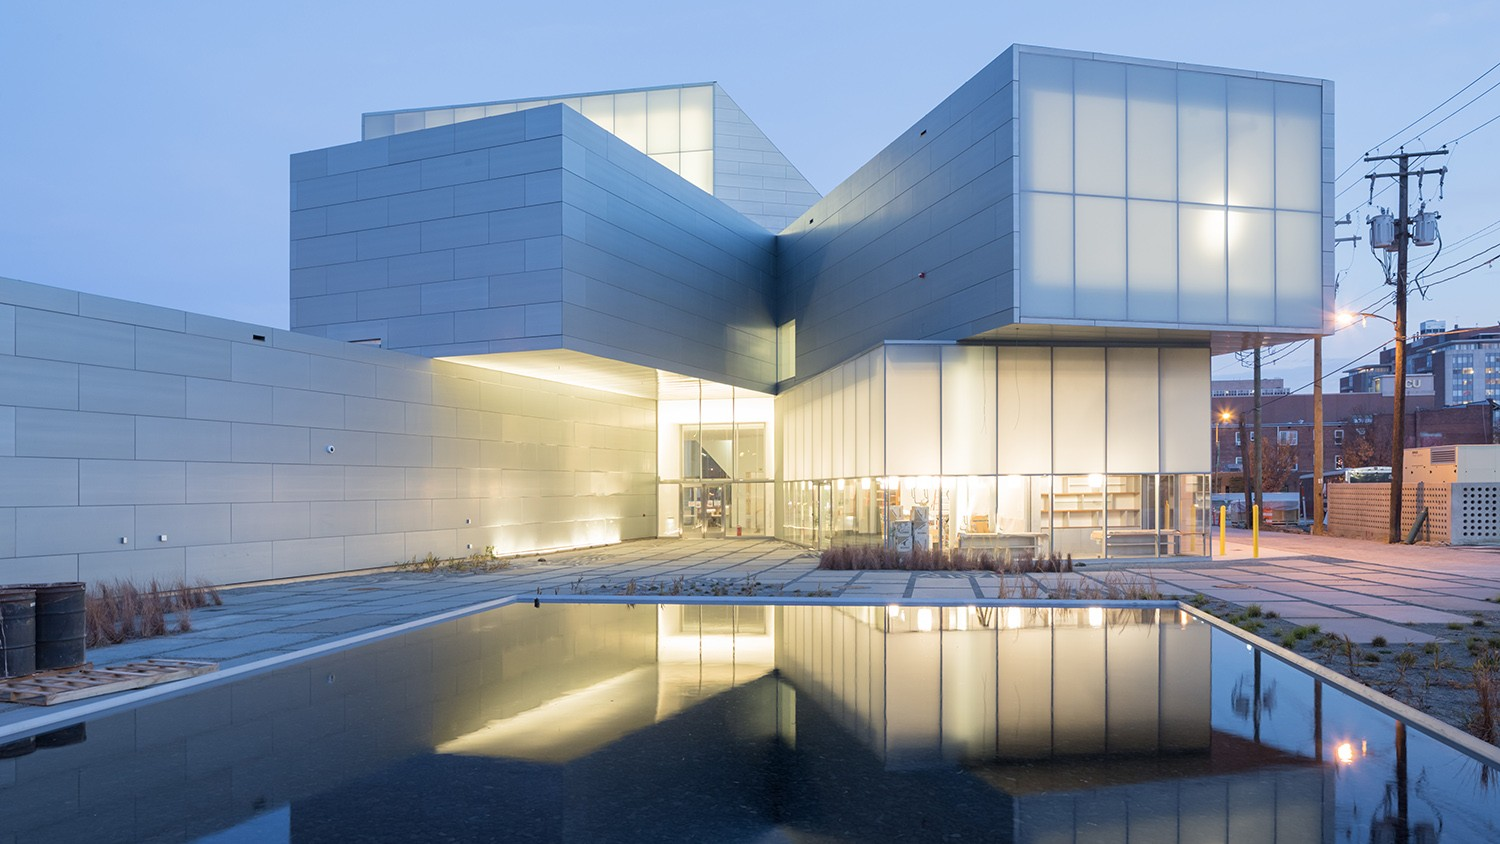 https://s3.us-east-2.amazonaws.com/steven-holl/uploads/projects/project-images/IwanBaan_ICA_VCU17-12SHA 4424_WH.jpg